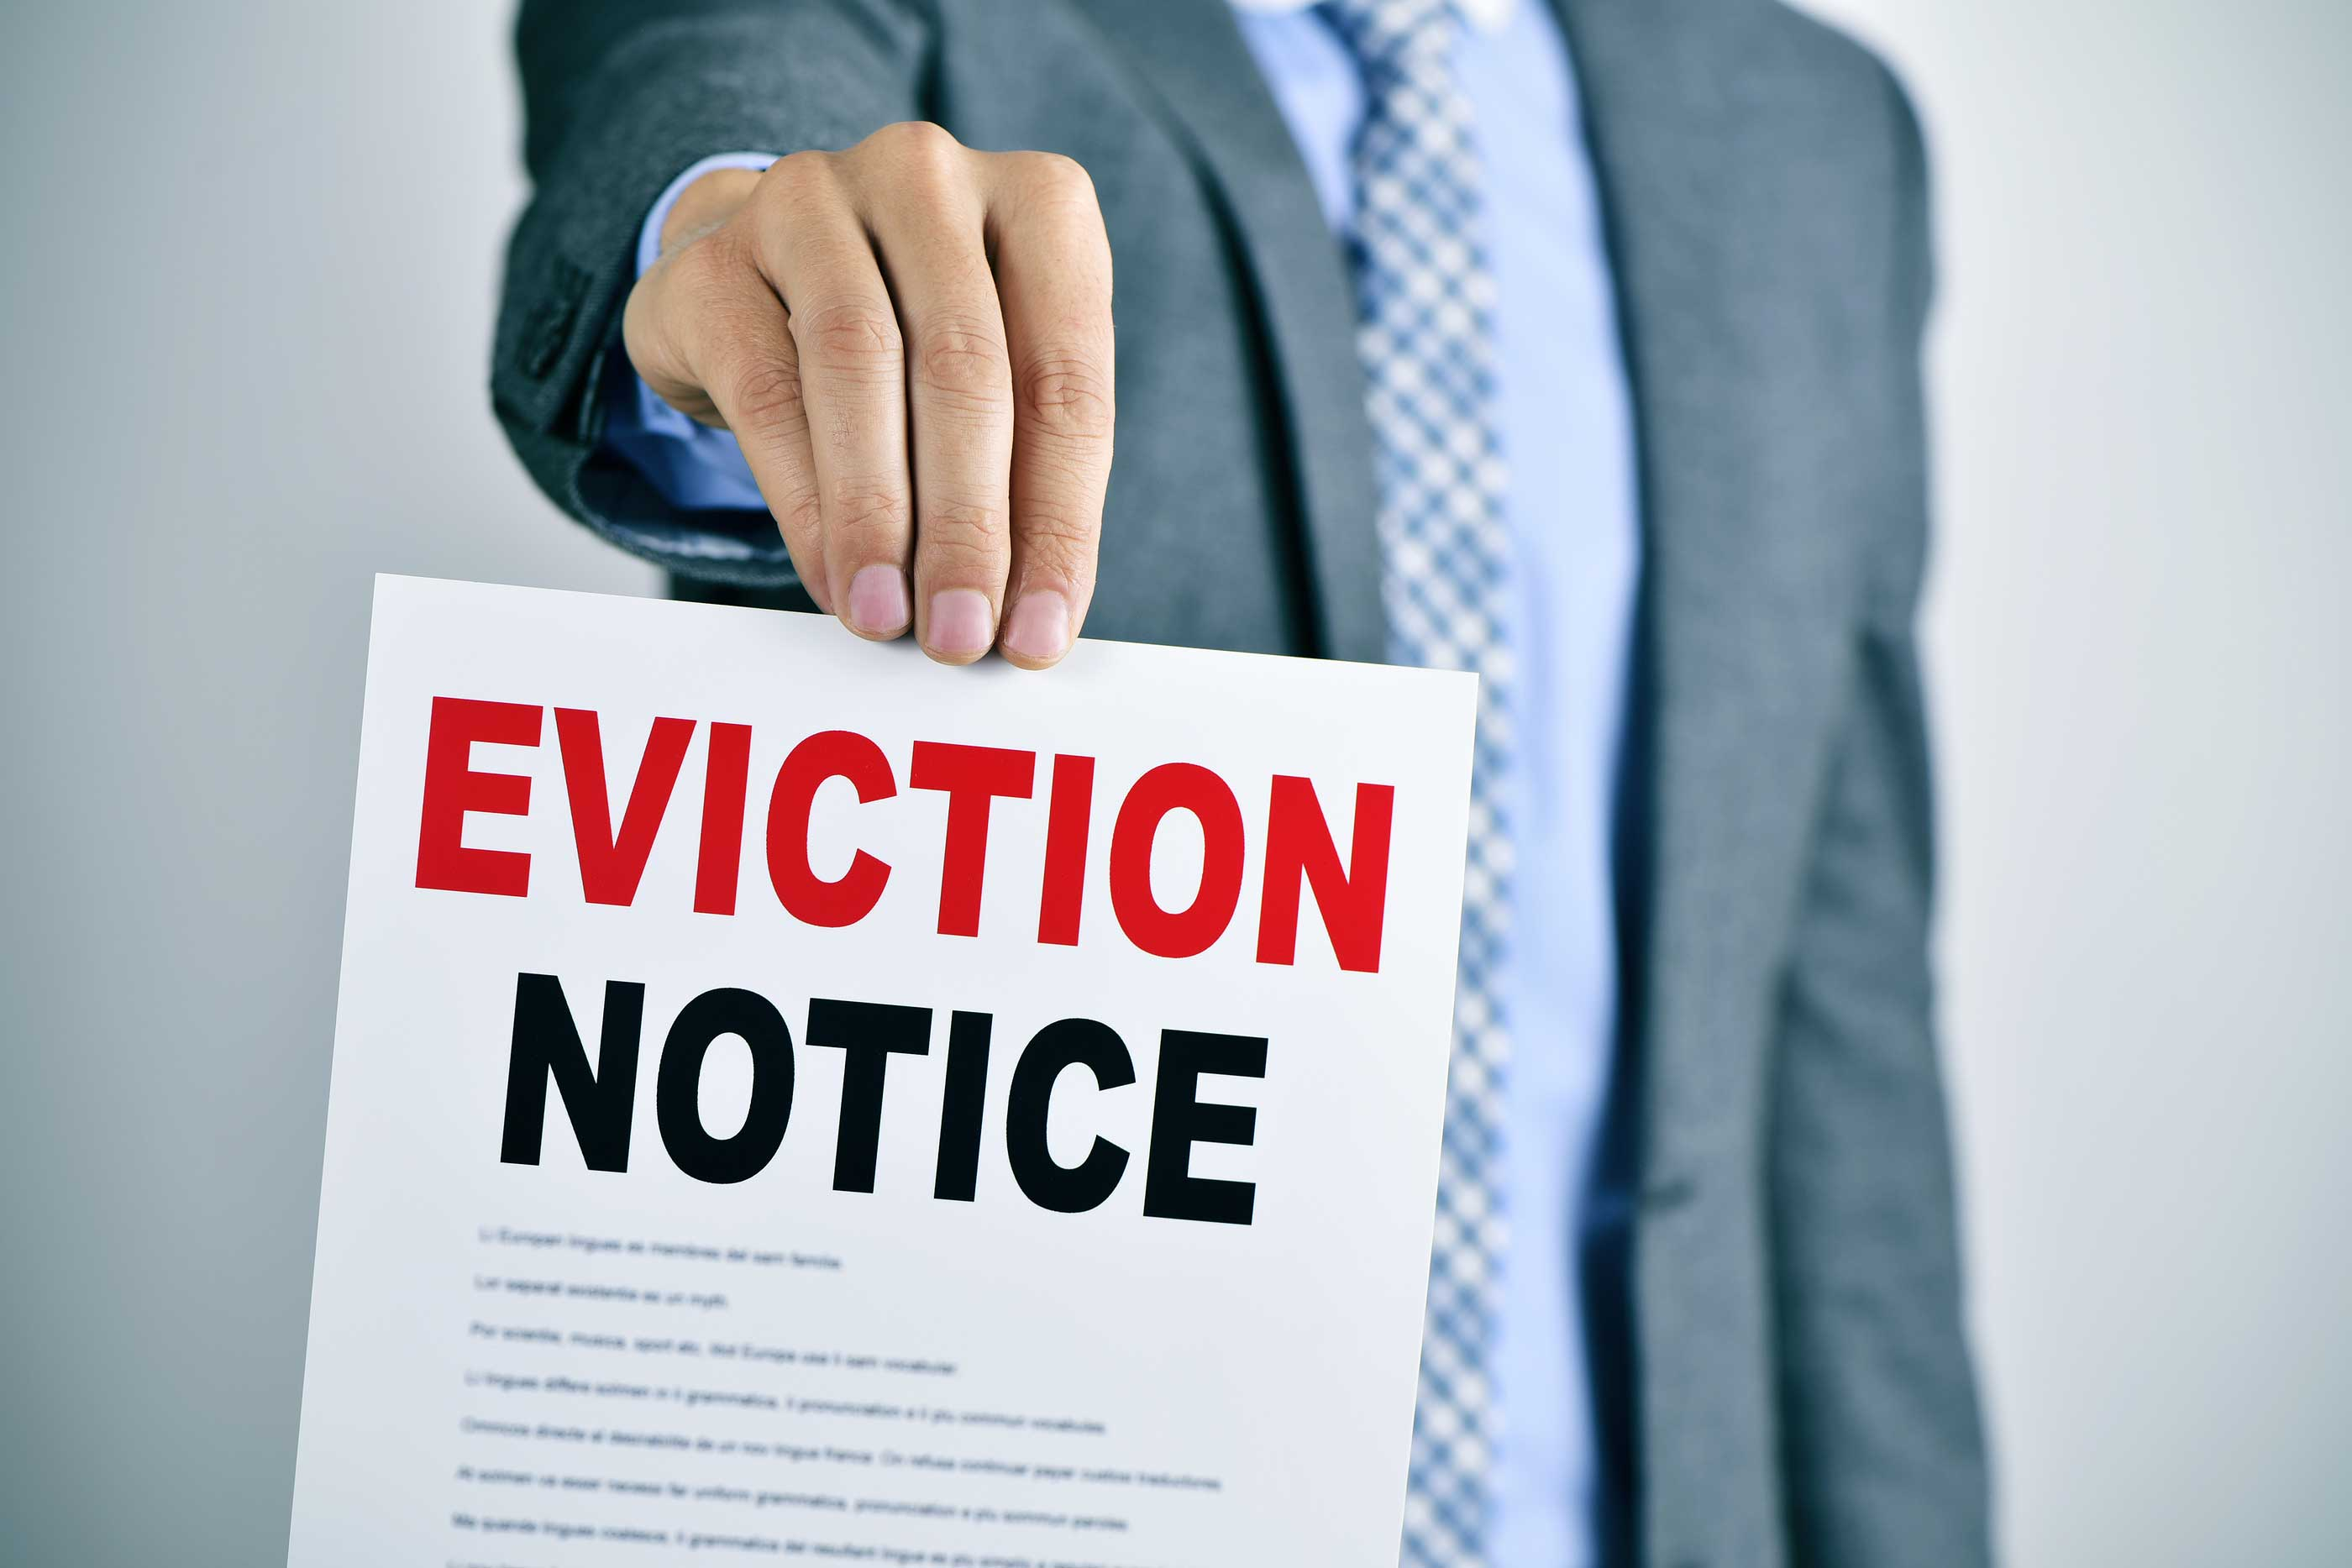 10 day eviction notice